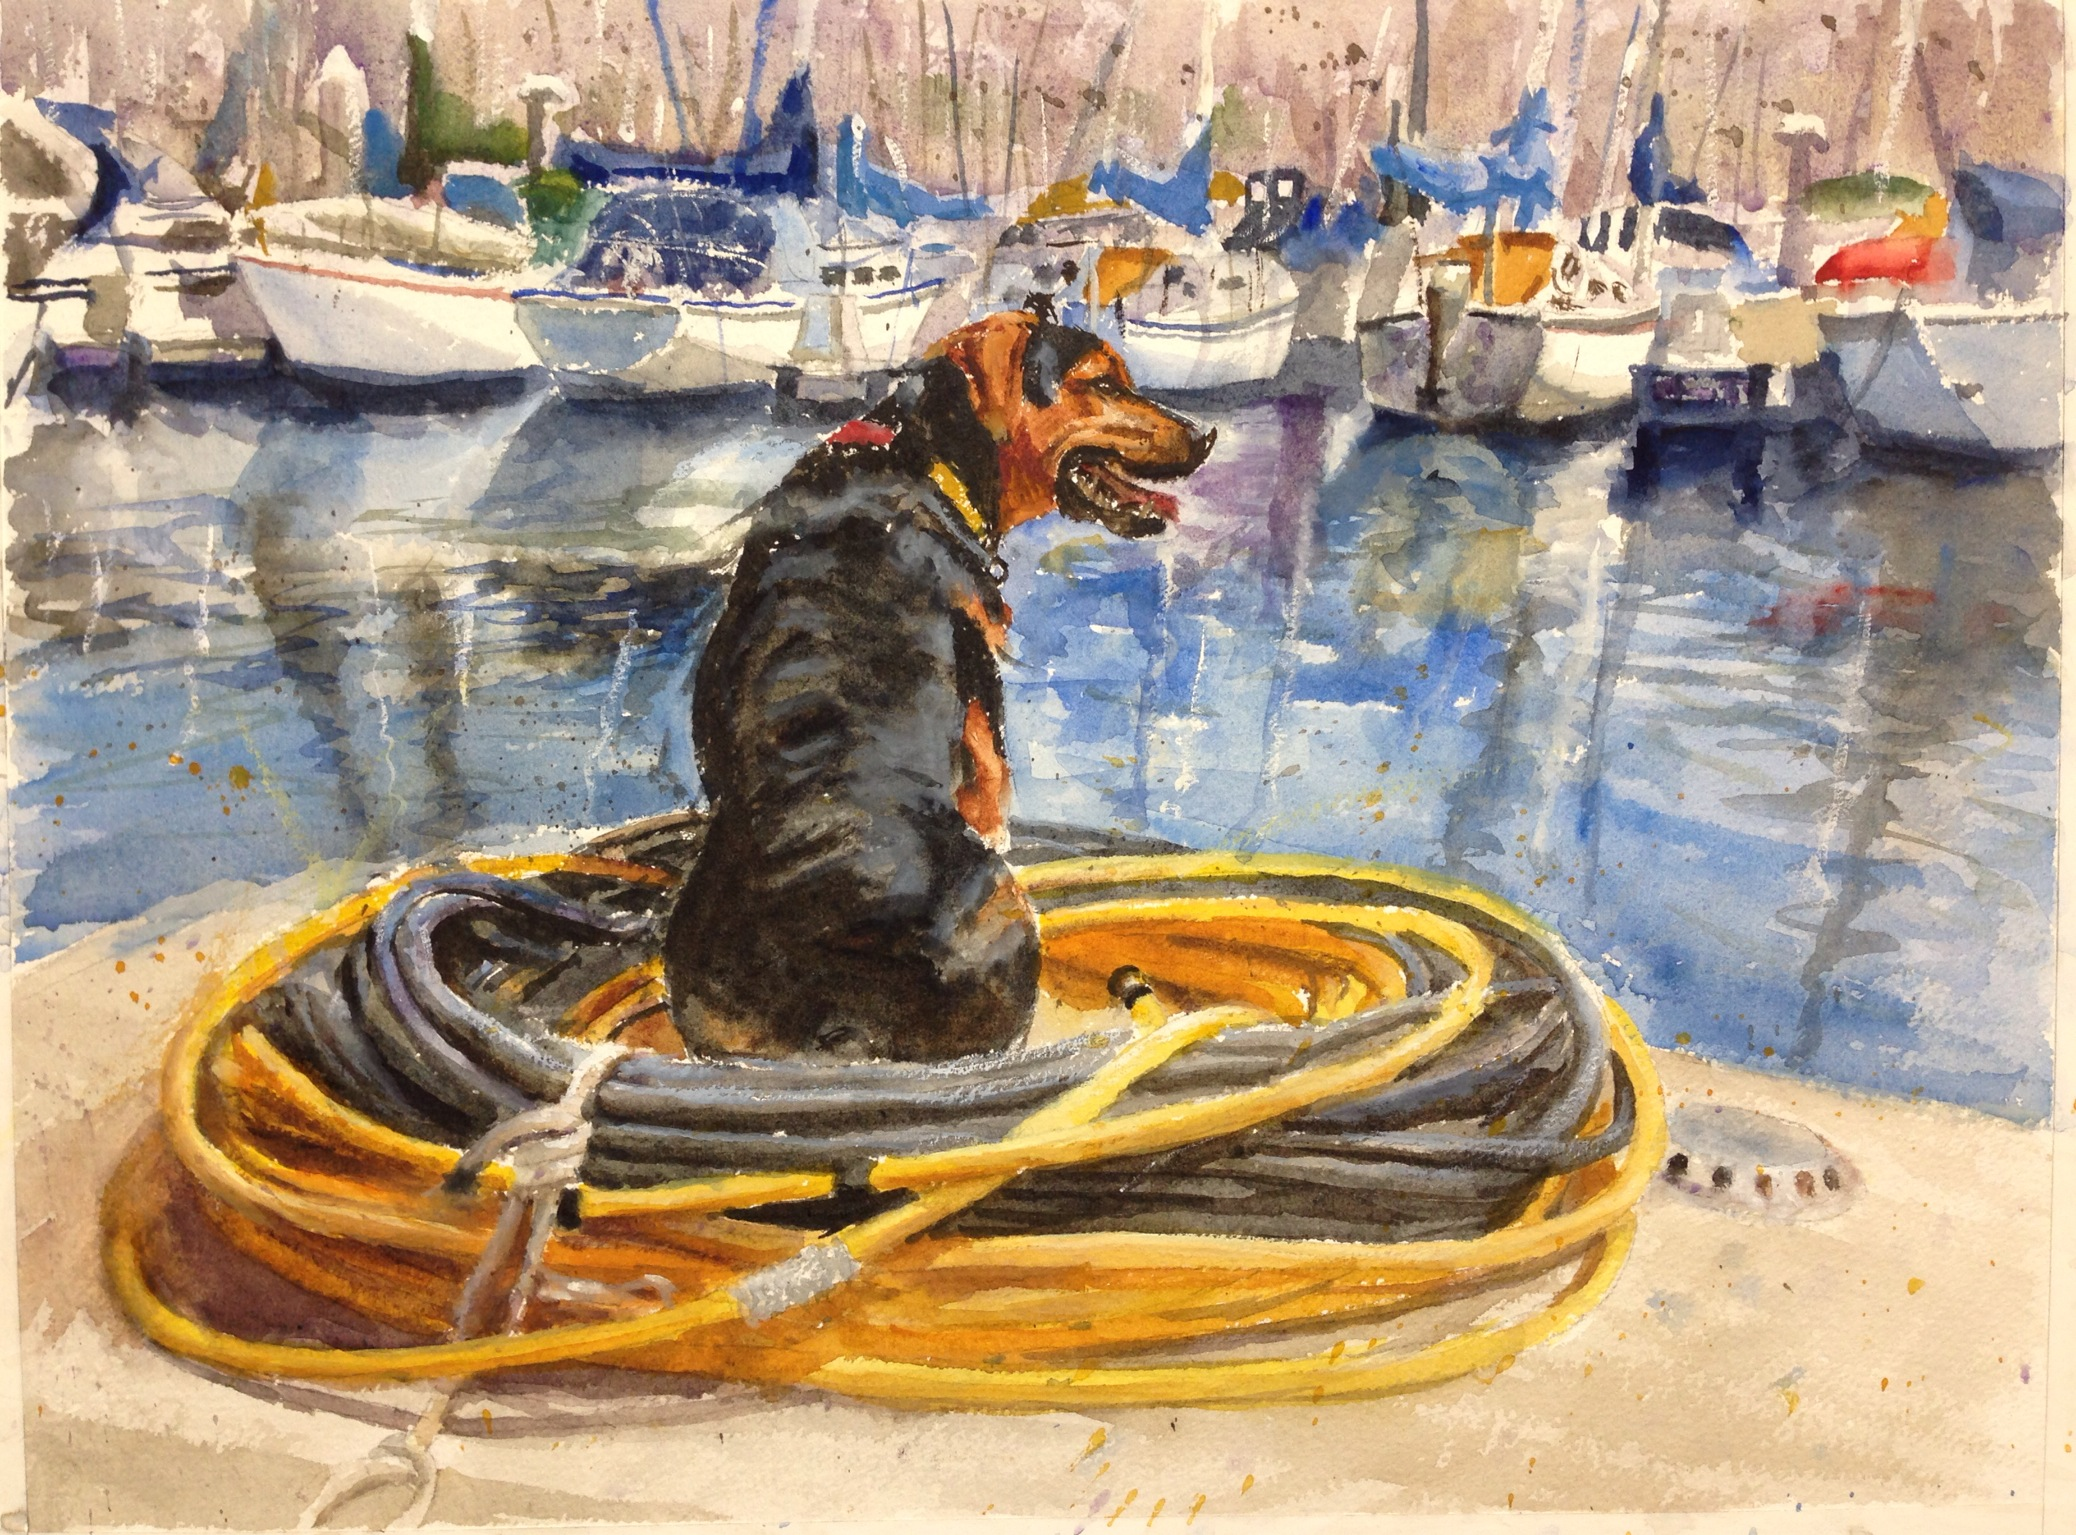 dog boats final wc 002.jpg